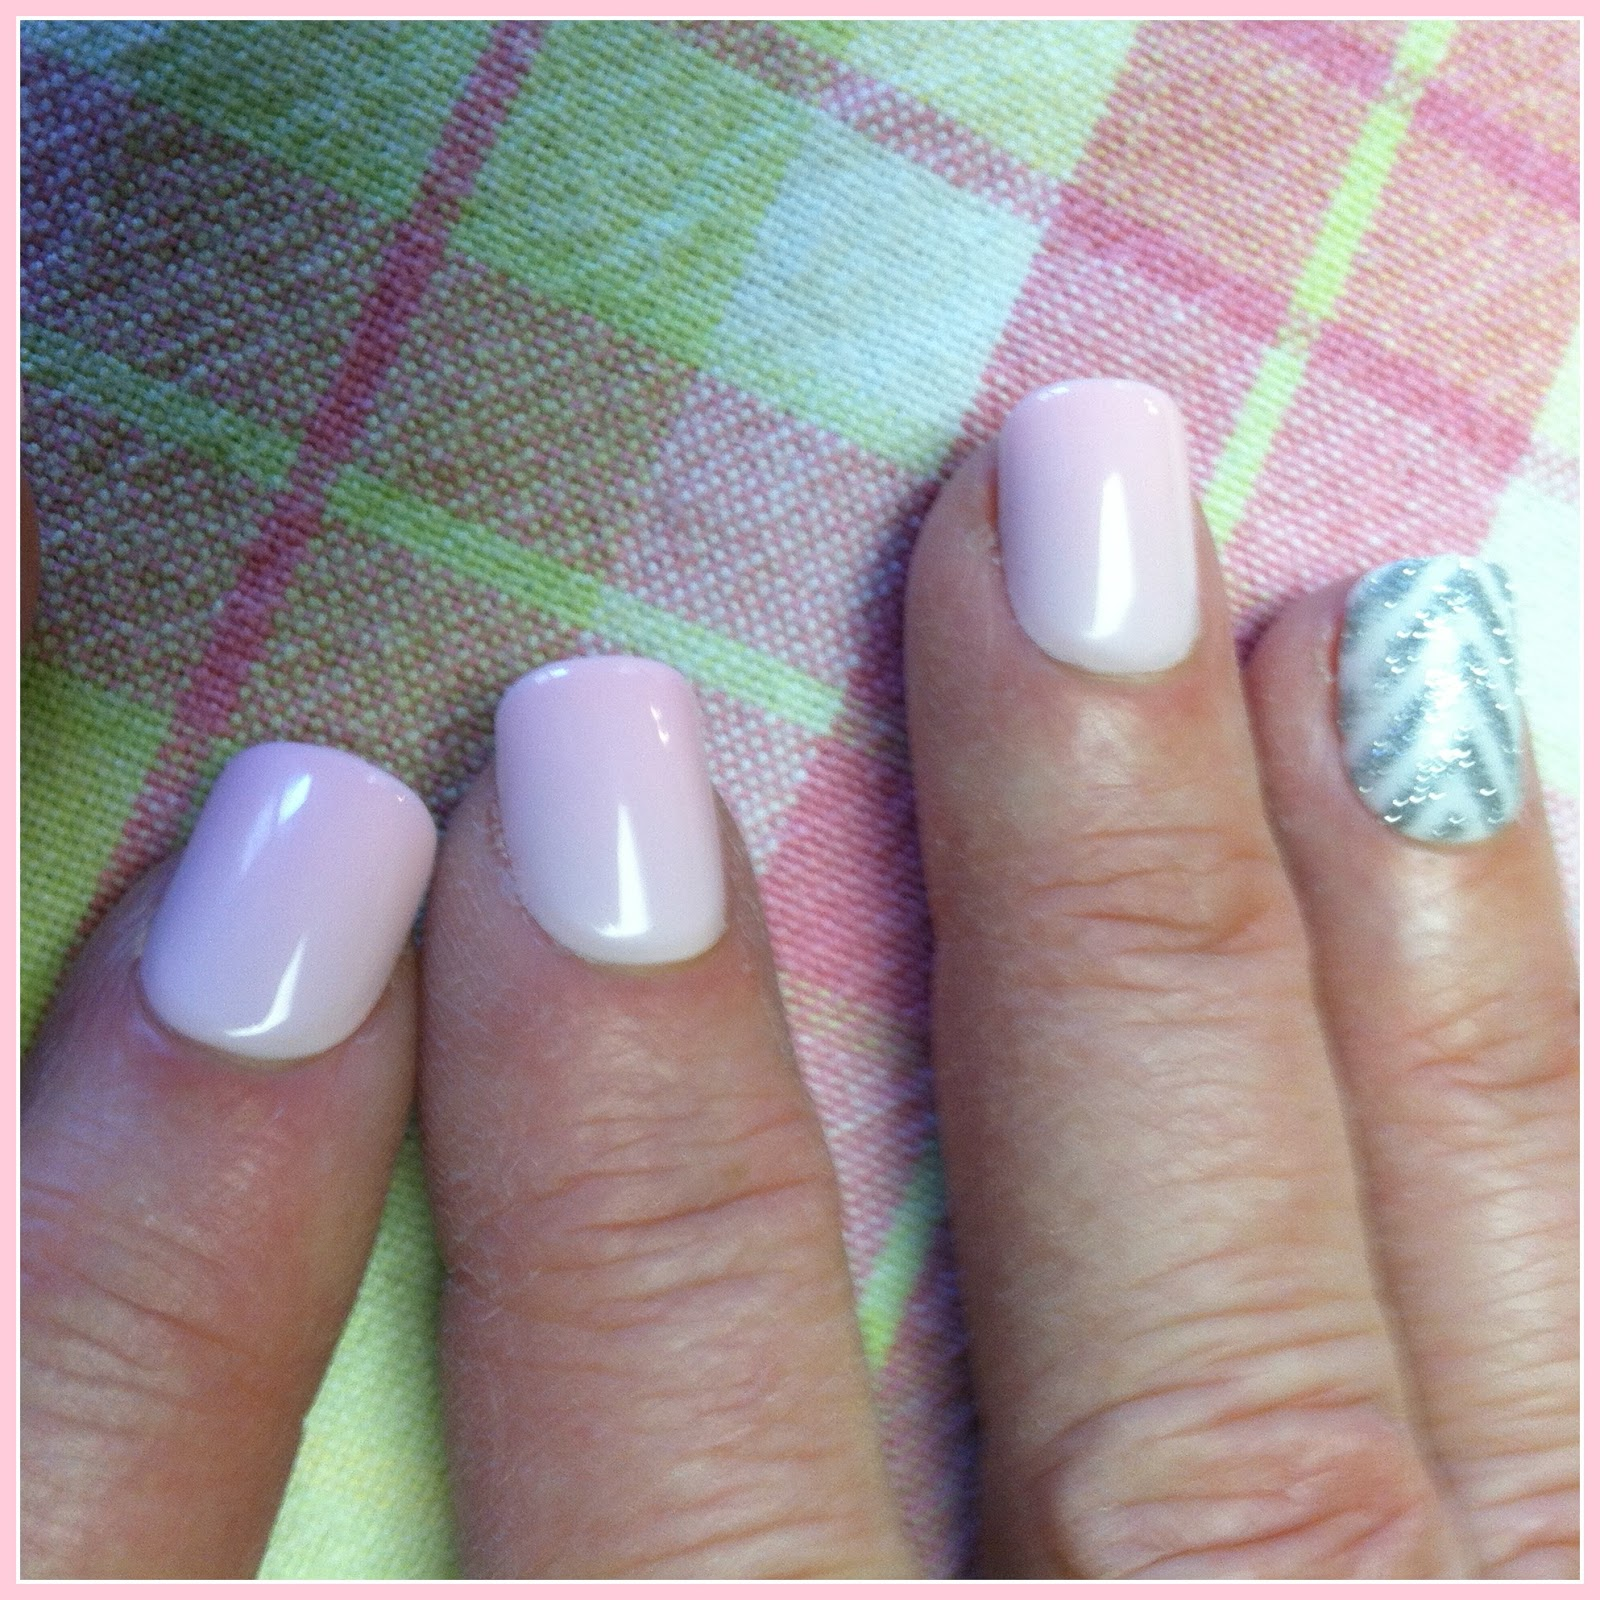 Are press-on nails tacky? | The Beautiful Matters